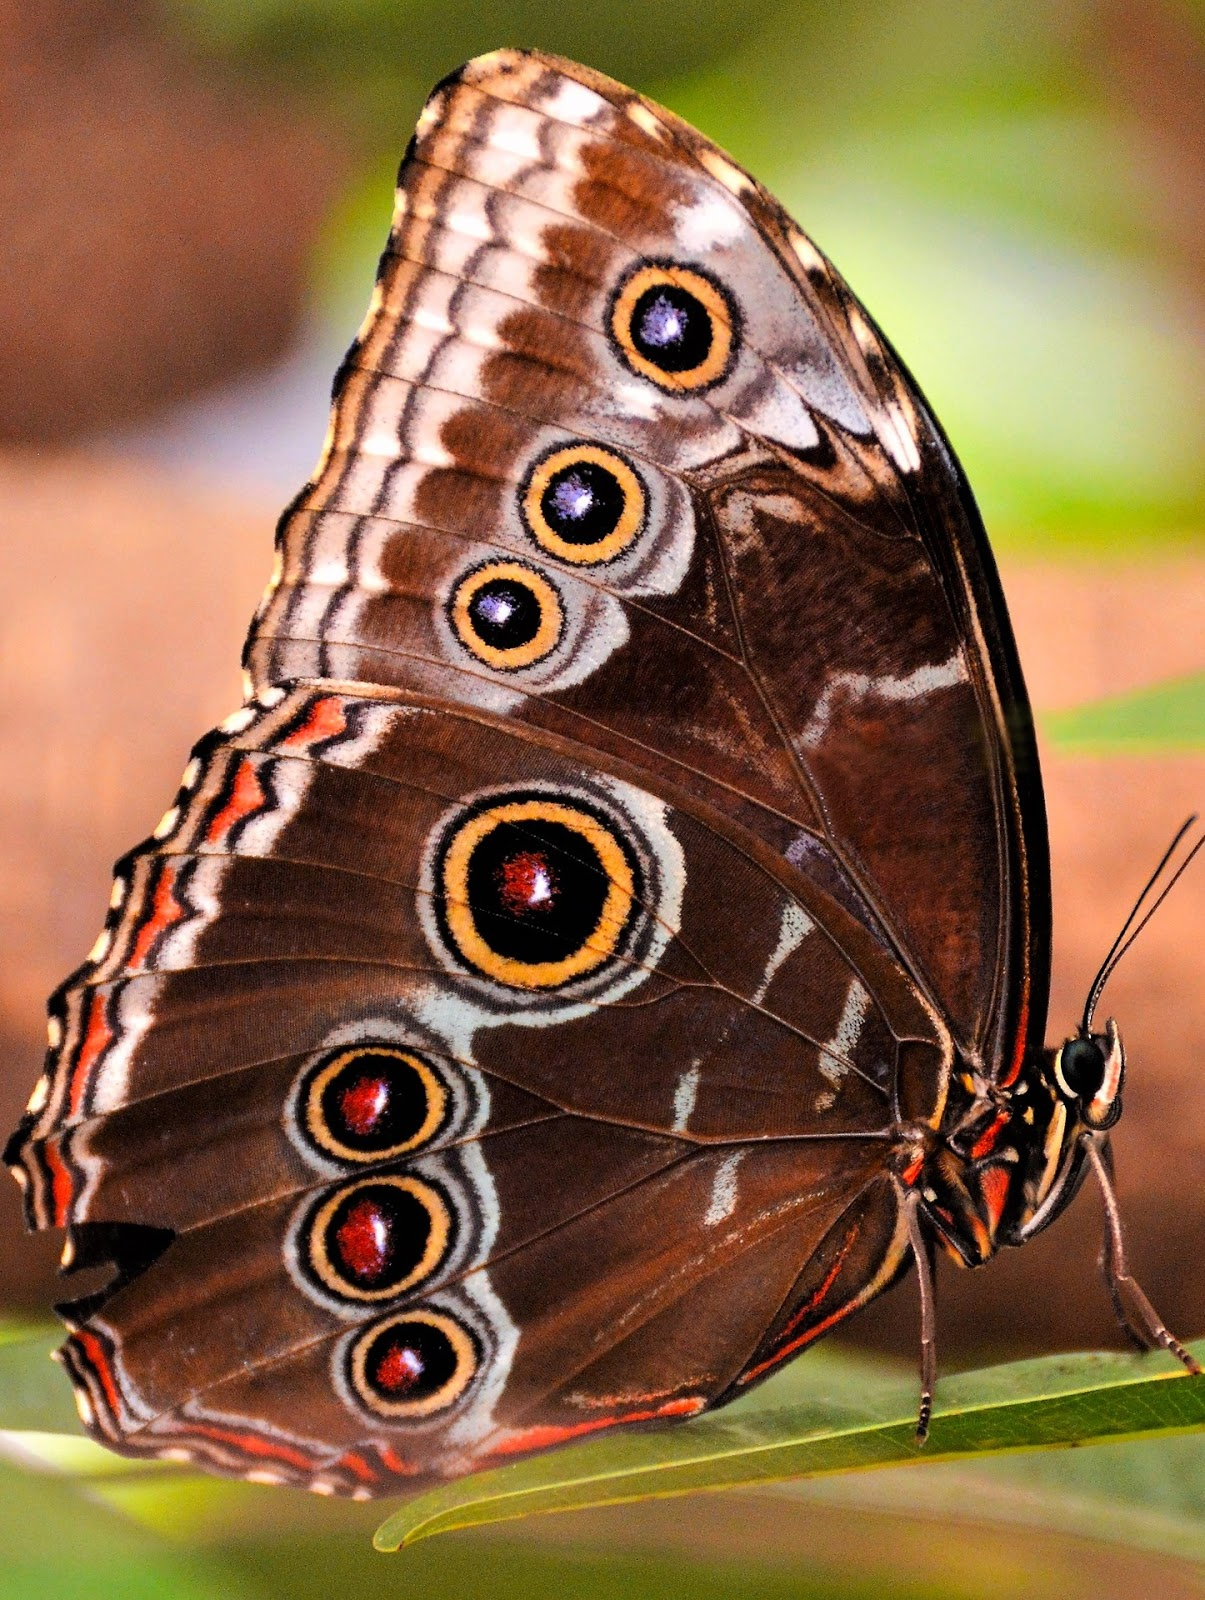 An owl butterfly up close.